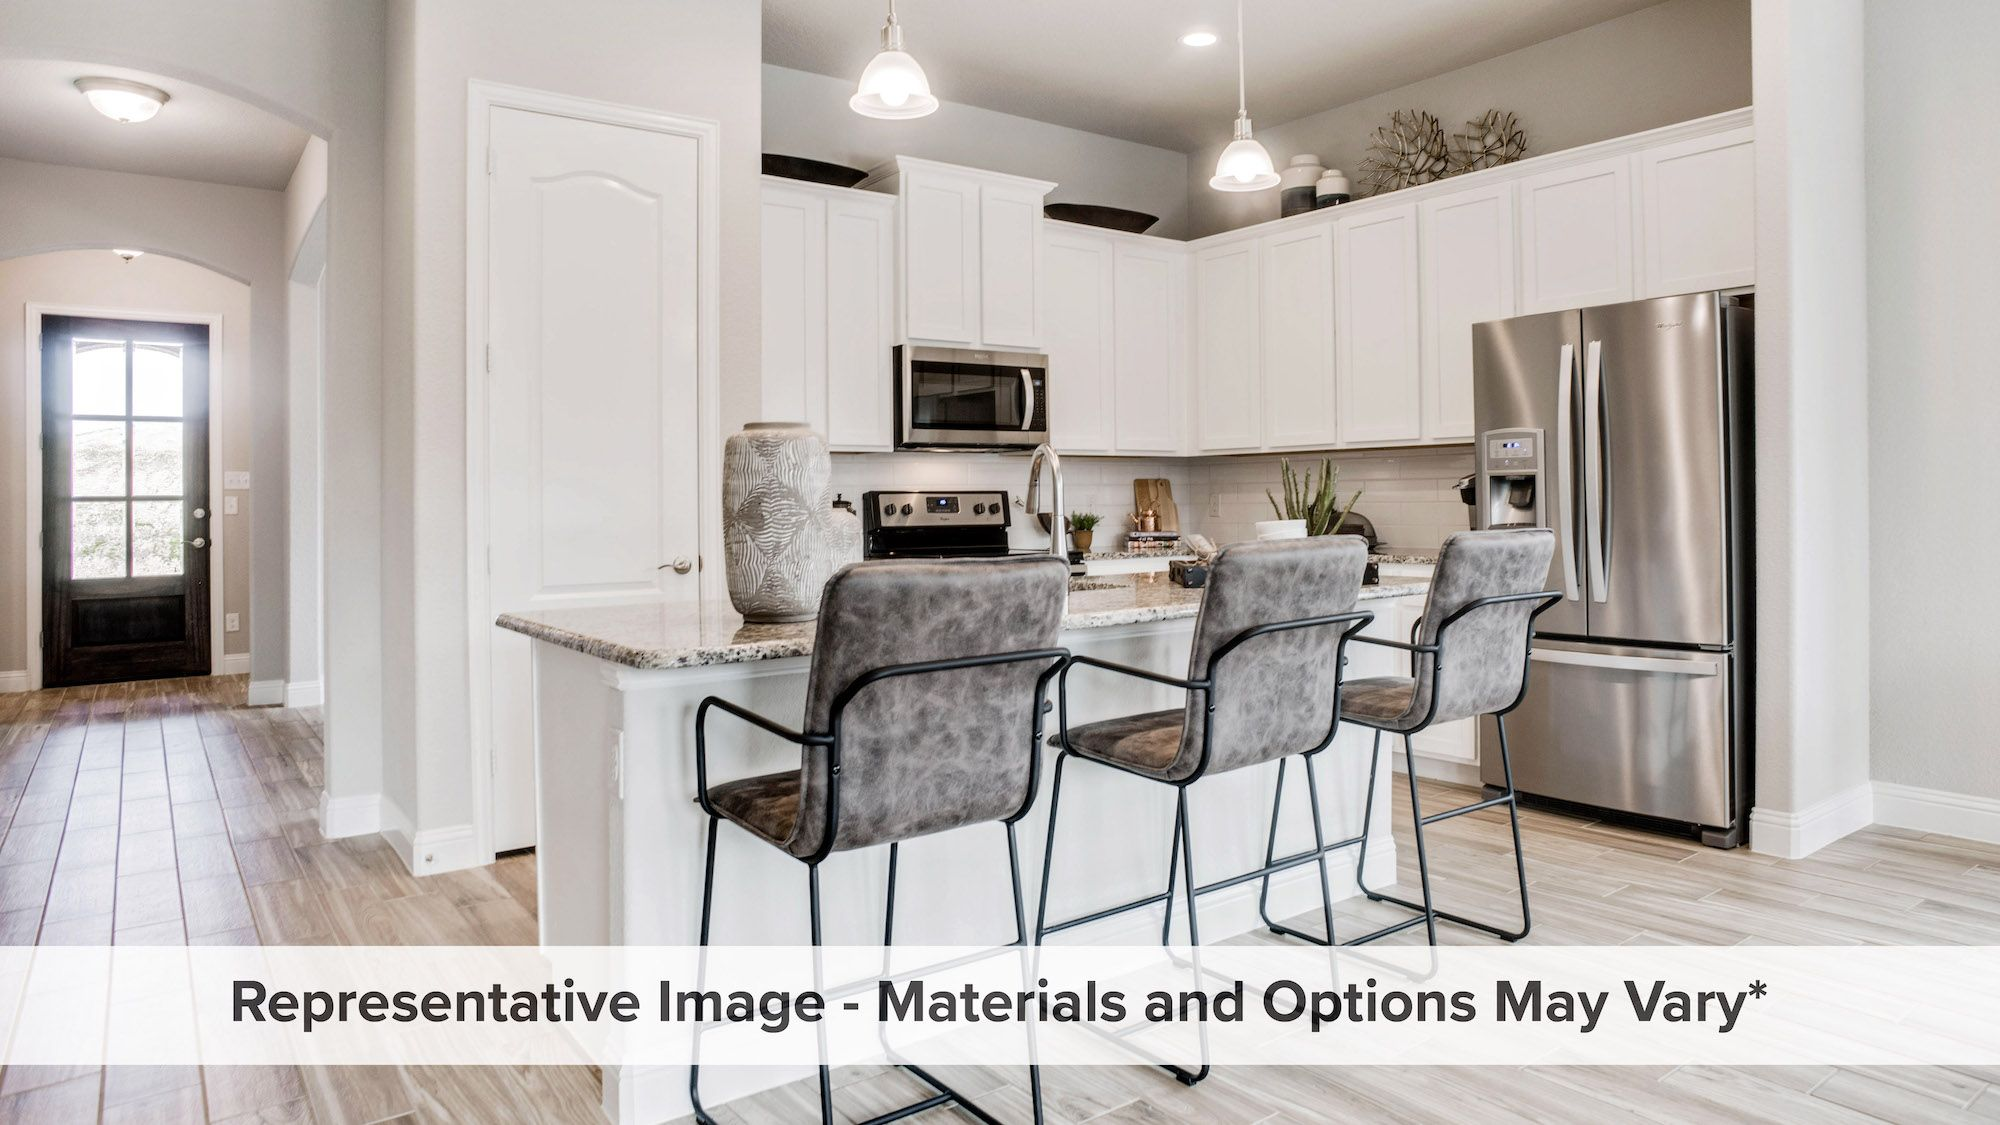 Kitchen featured in the Ironwood By HistoryMaker Homes    in Dallas, TX